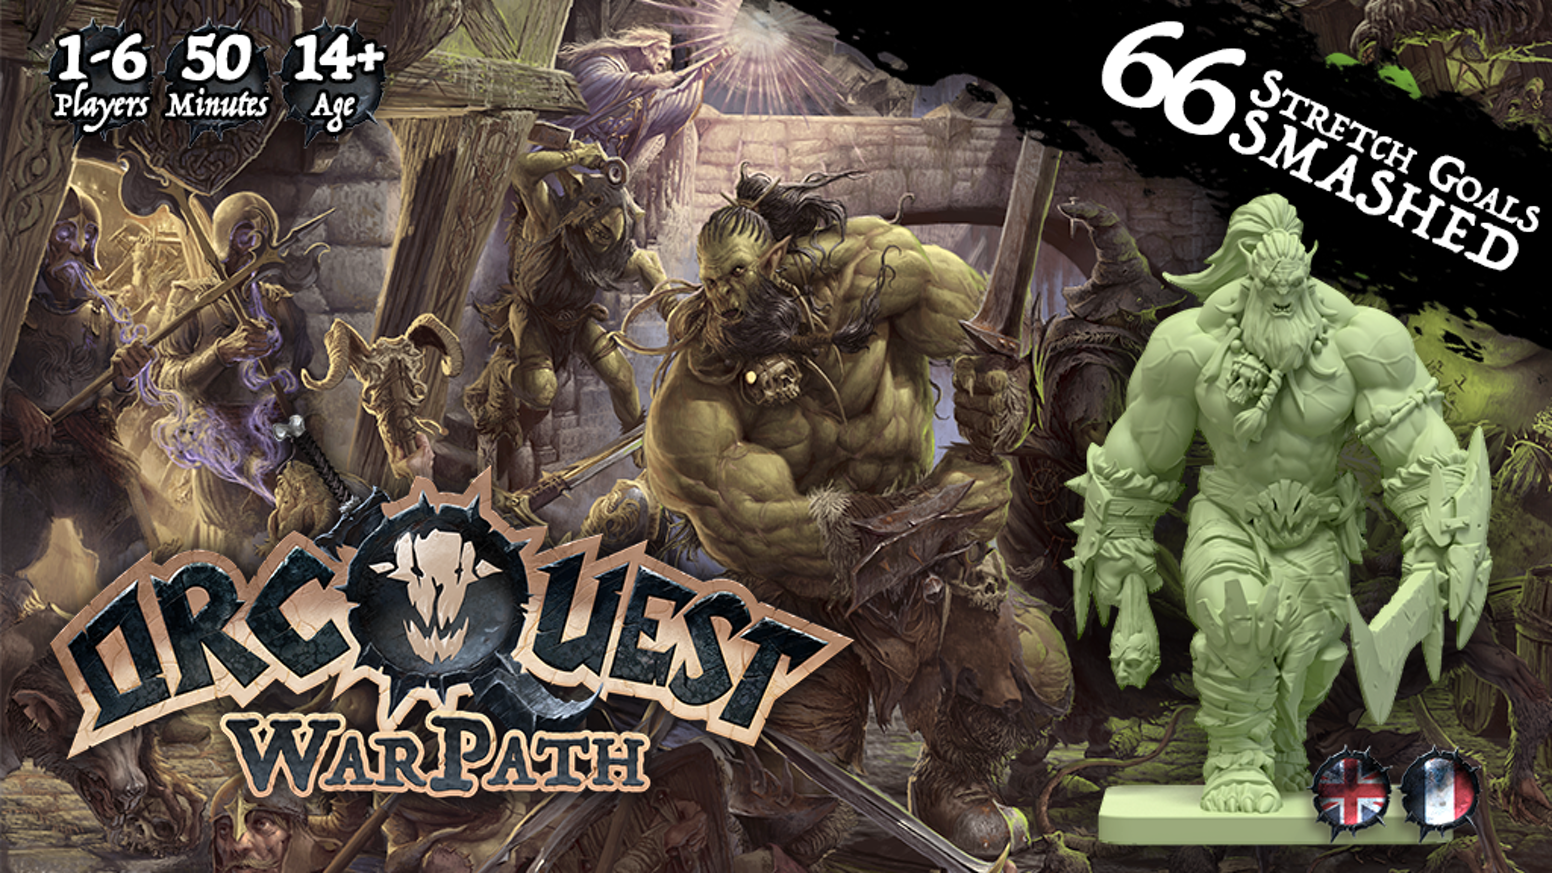 Live the adventures of an Orc band that departs on a quest in the OrcQuest Universe. A collaborative game from 1 to 6 players.